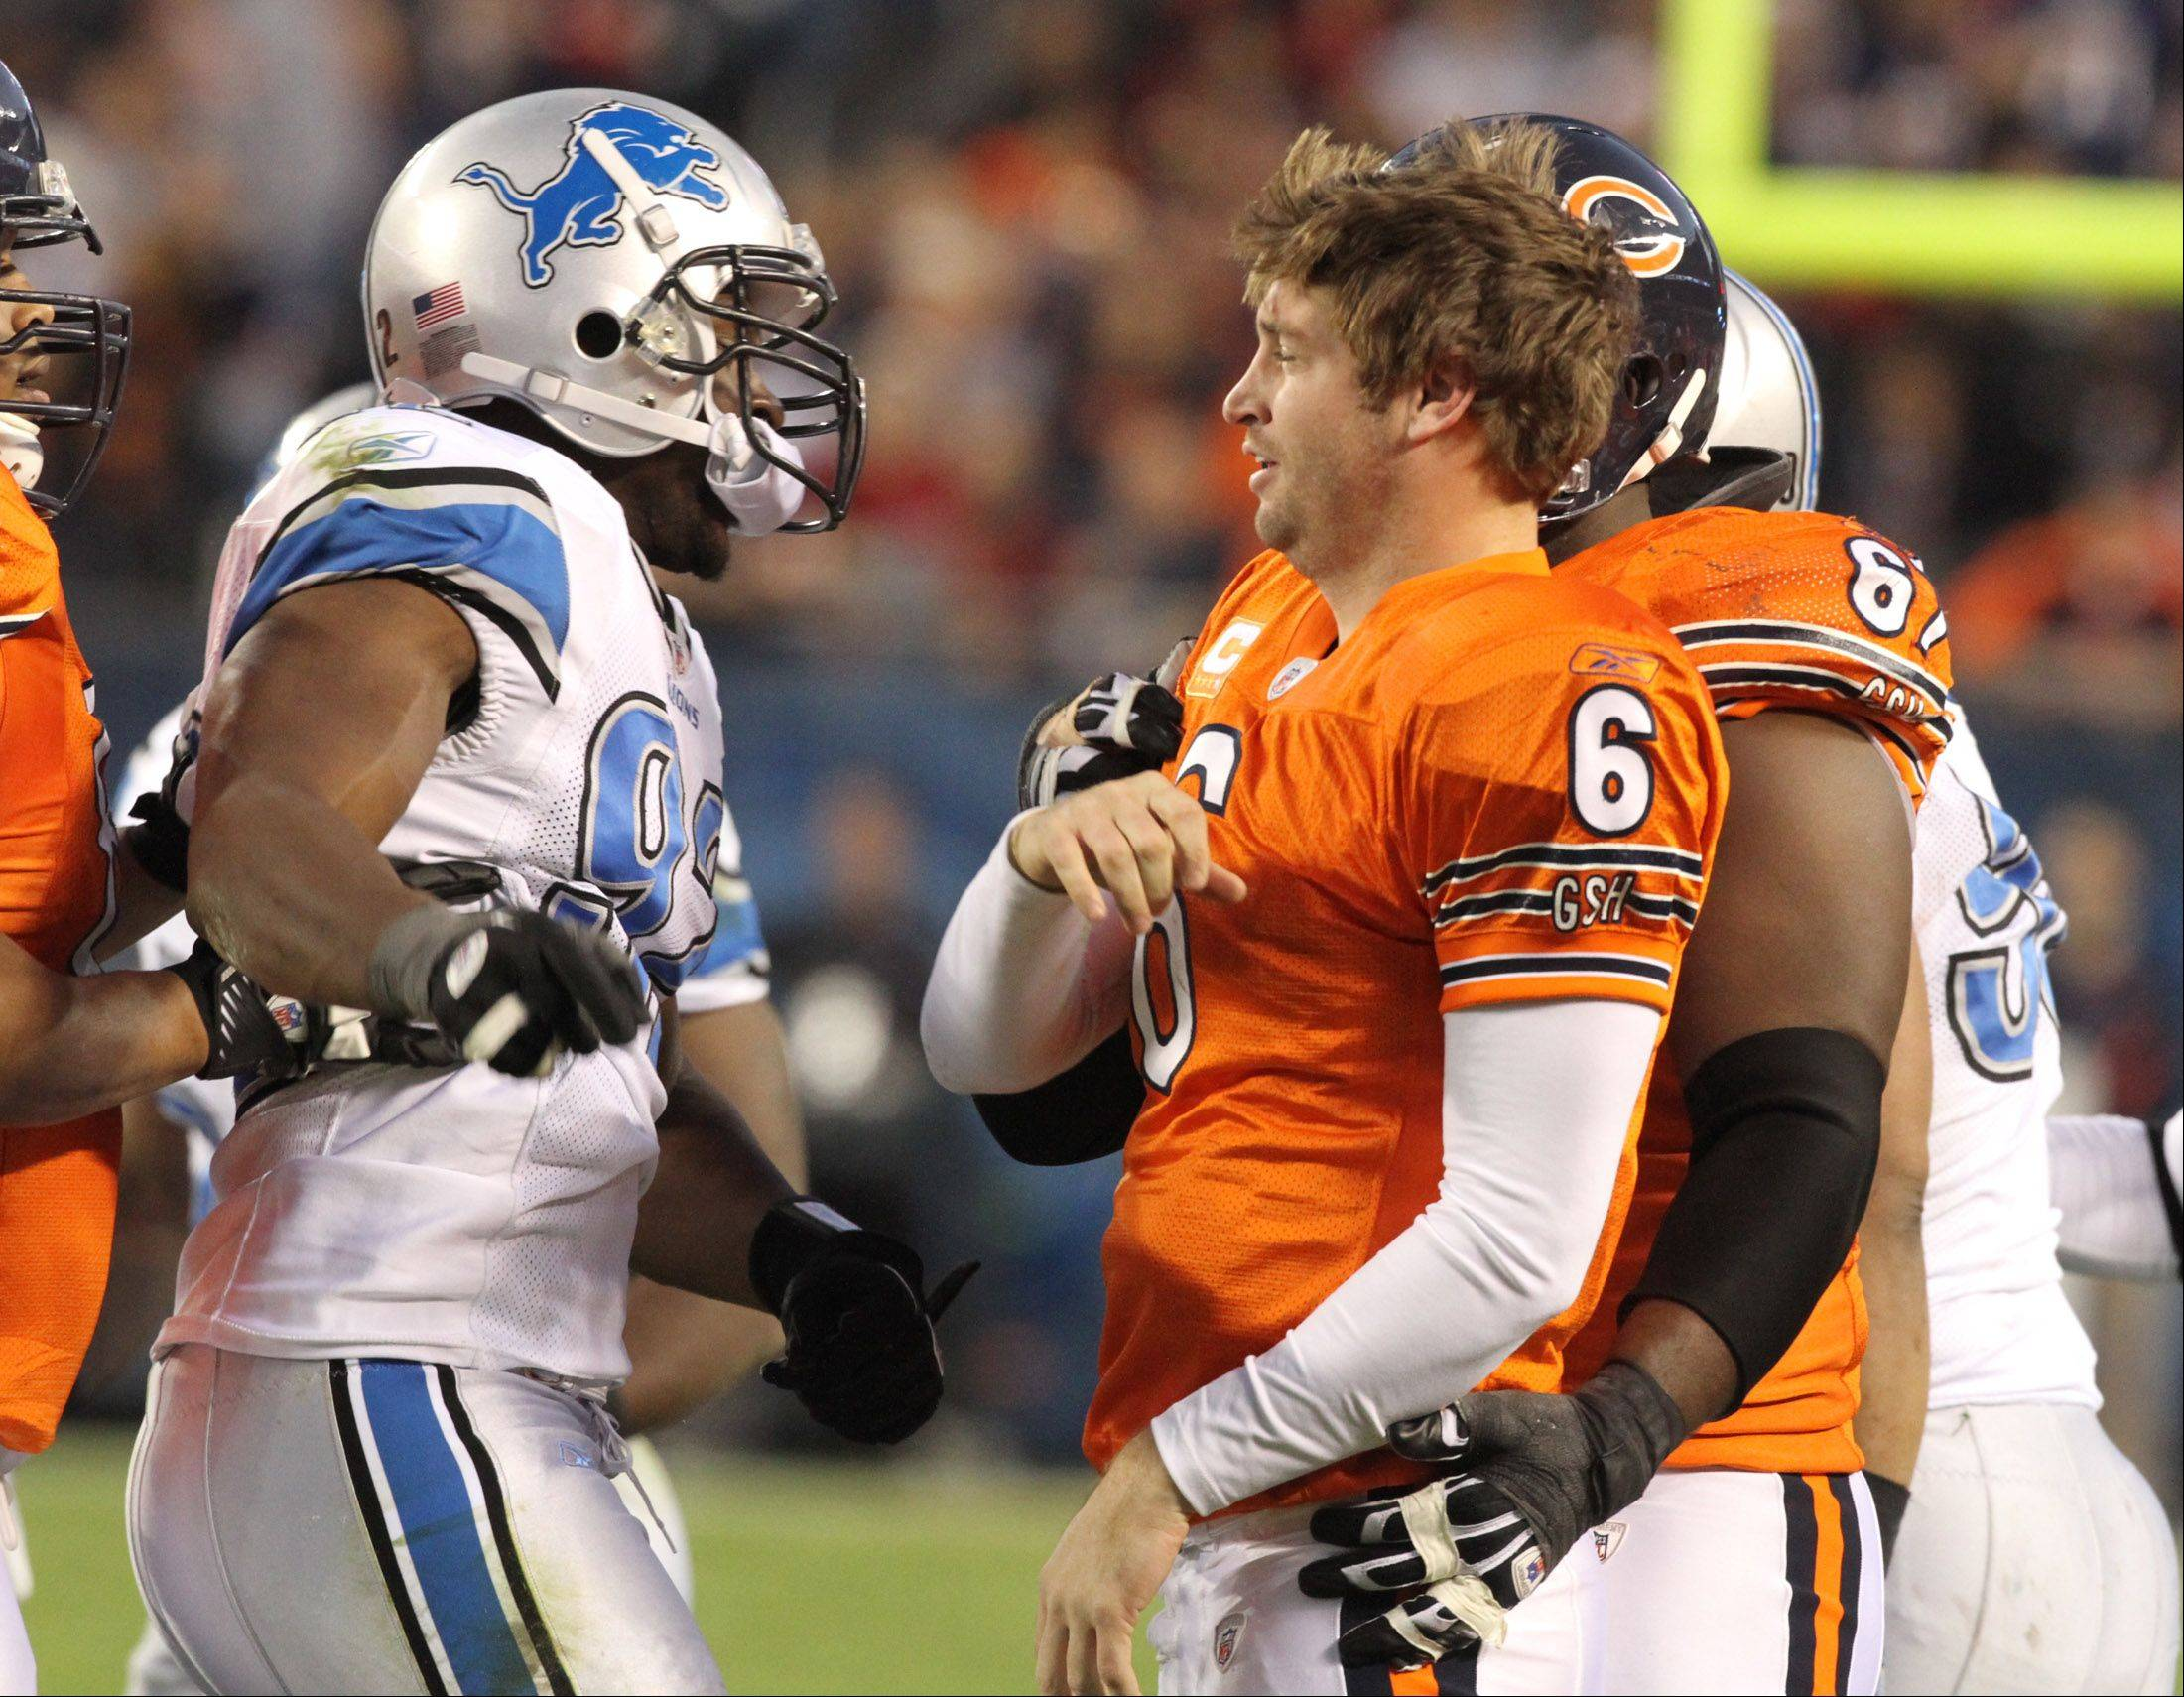 Chicago Bears Jay Cutler after being sacked by Detroit Lions Cliff Avril at Soldier Field on Sunday.